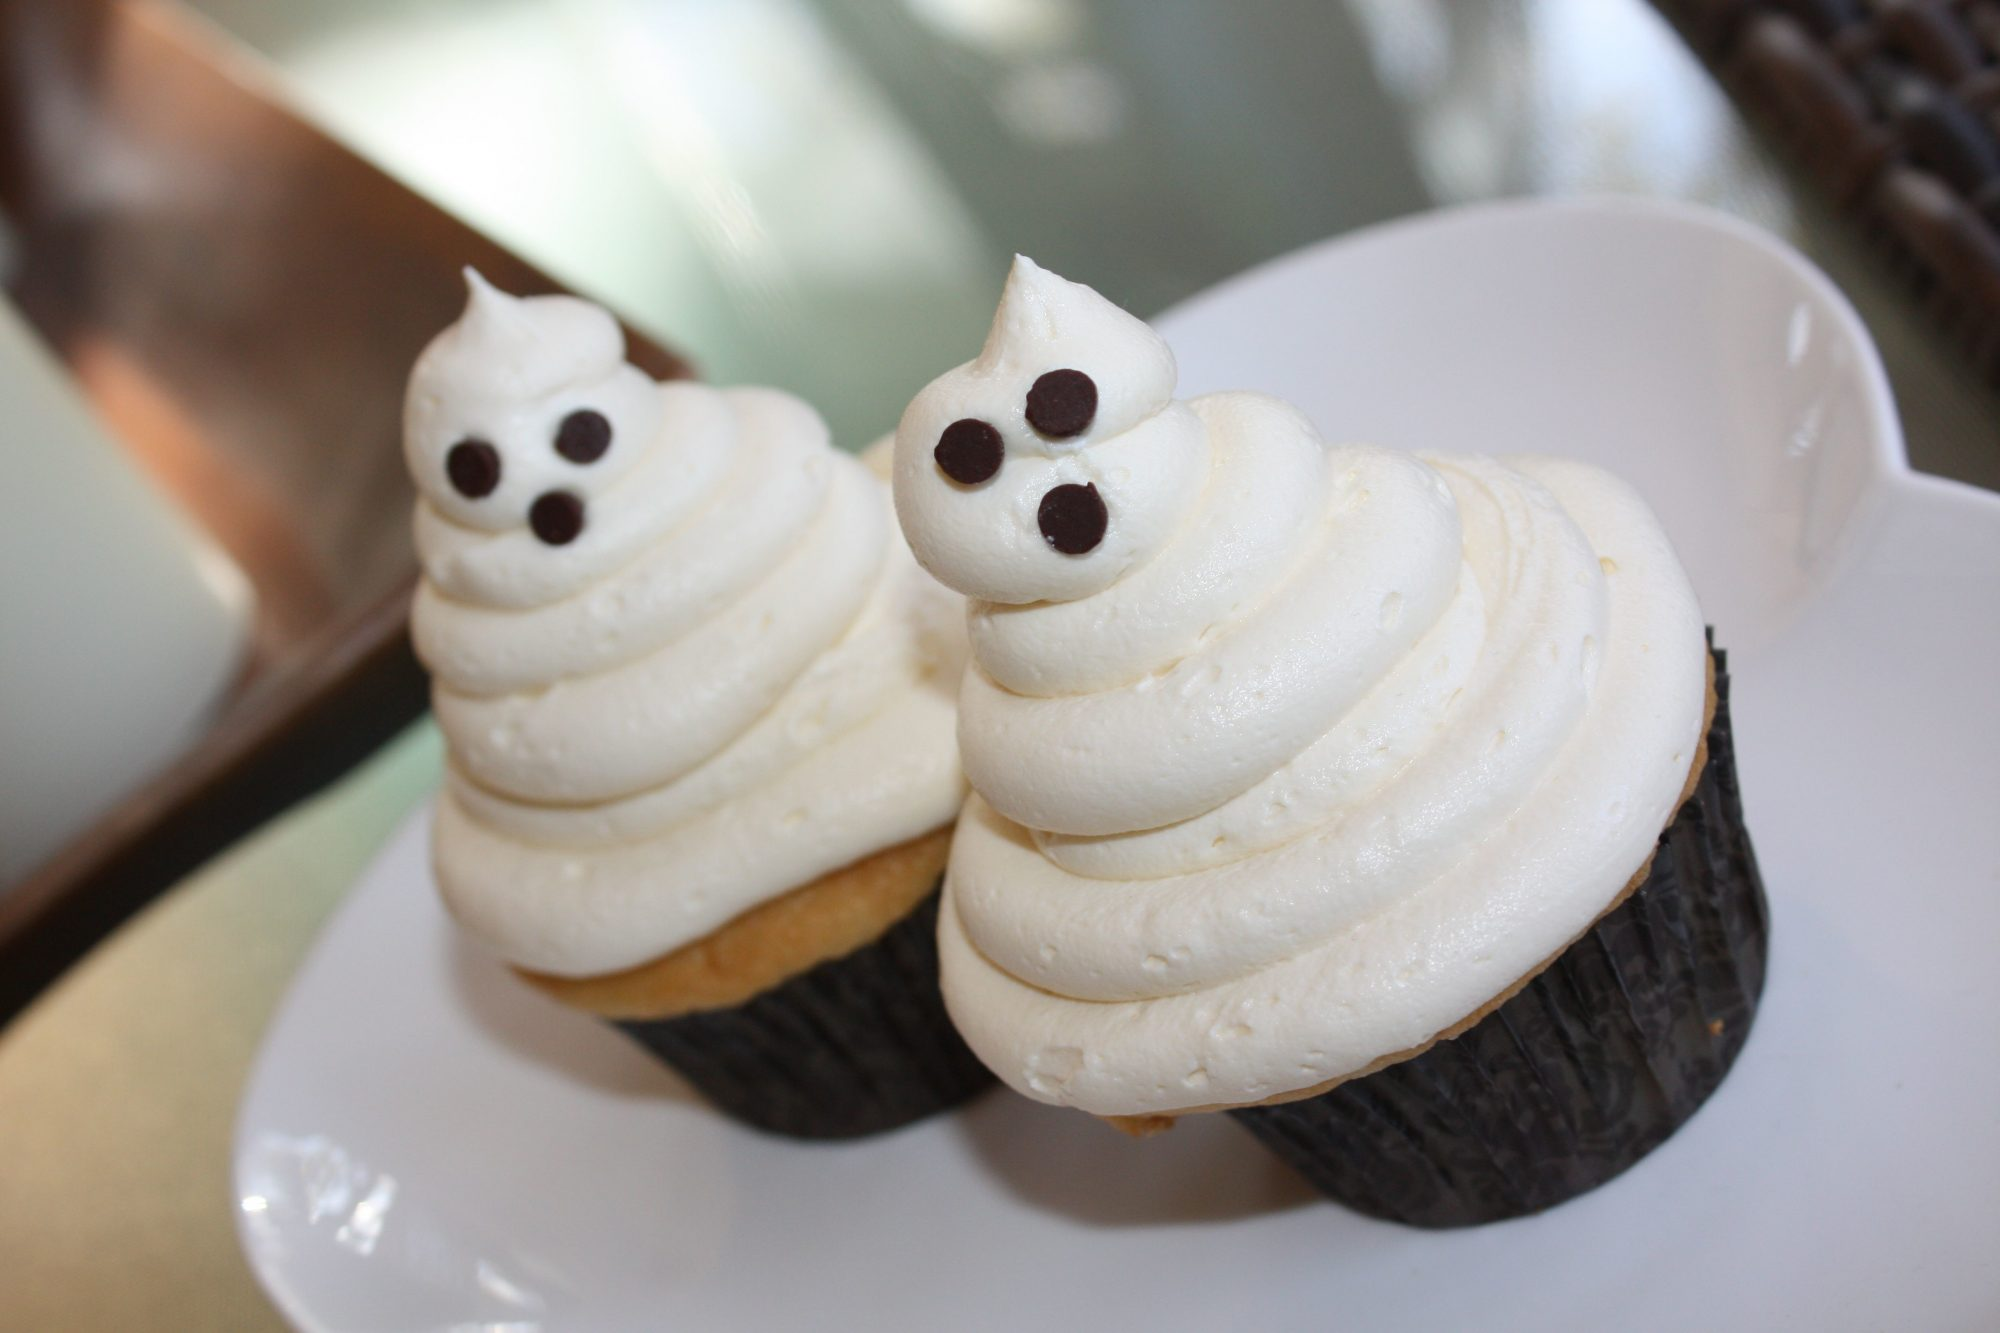 two Halloween cupcakes decorated to look like ghosts